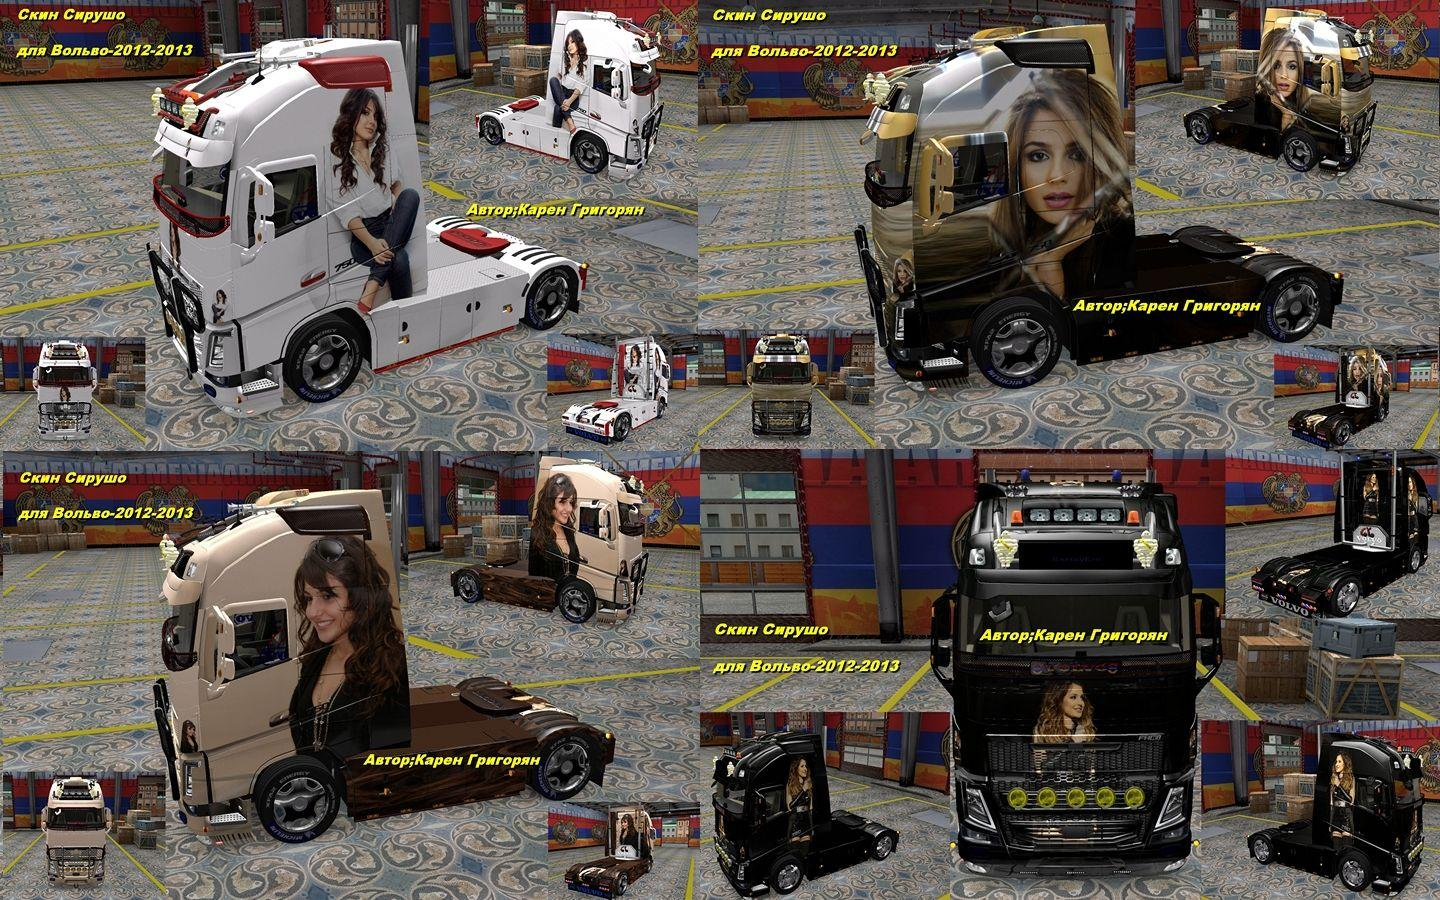 Iveco strator and volvo fh 2013 tuning euro truck simulator 2 mods - Sirusho Skin Pack 1 22 Ets 2 Mods Euro Truck Simulator